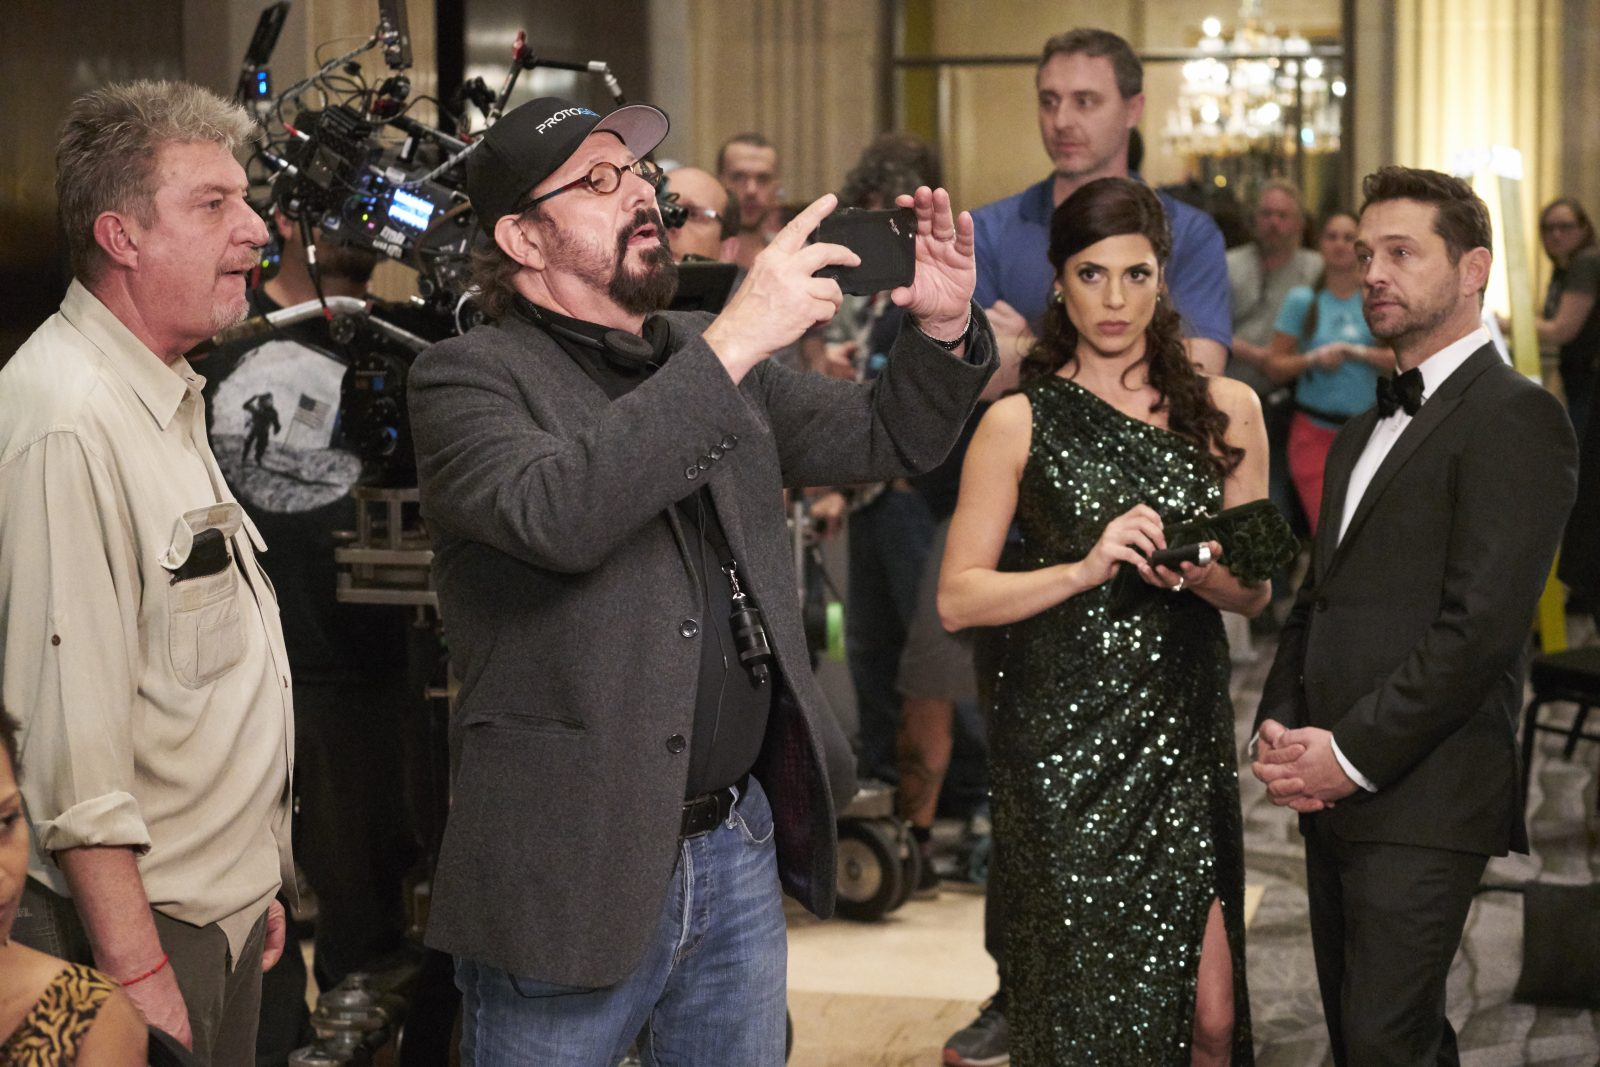 Rob Lieberman directing an episode of the Canadian series 'Private Eyes' in Toronto in November 2016. Stars Cindy Sampson and Jason Priestley are looking on. (Courtesy 'Private Eyes')